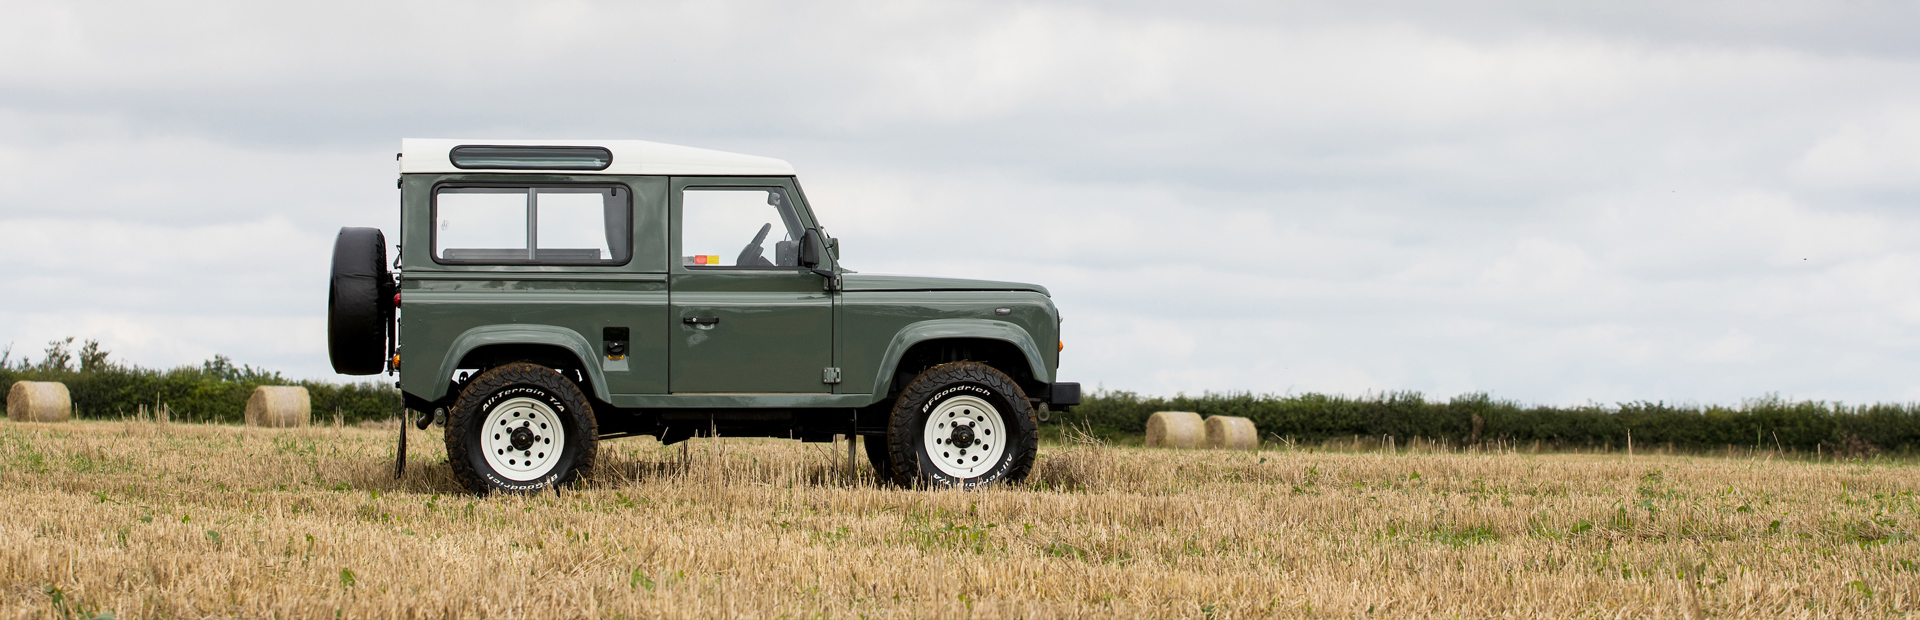 Arkonik Ranger - Custom built Land Rover Defender 90